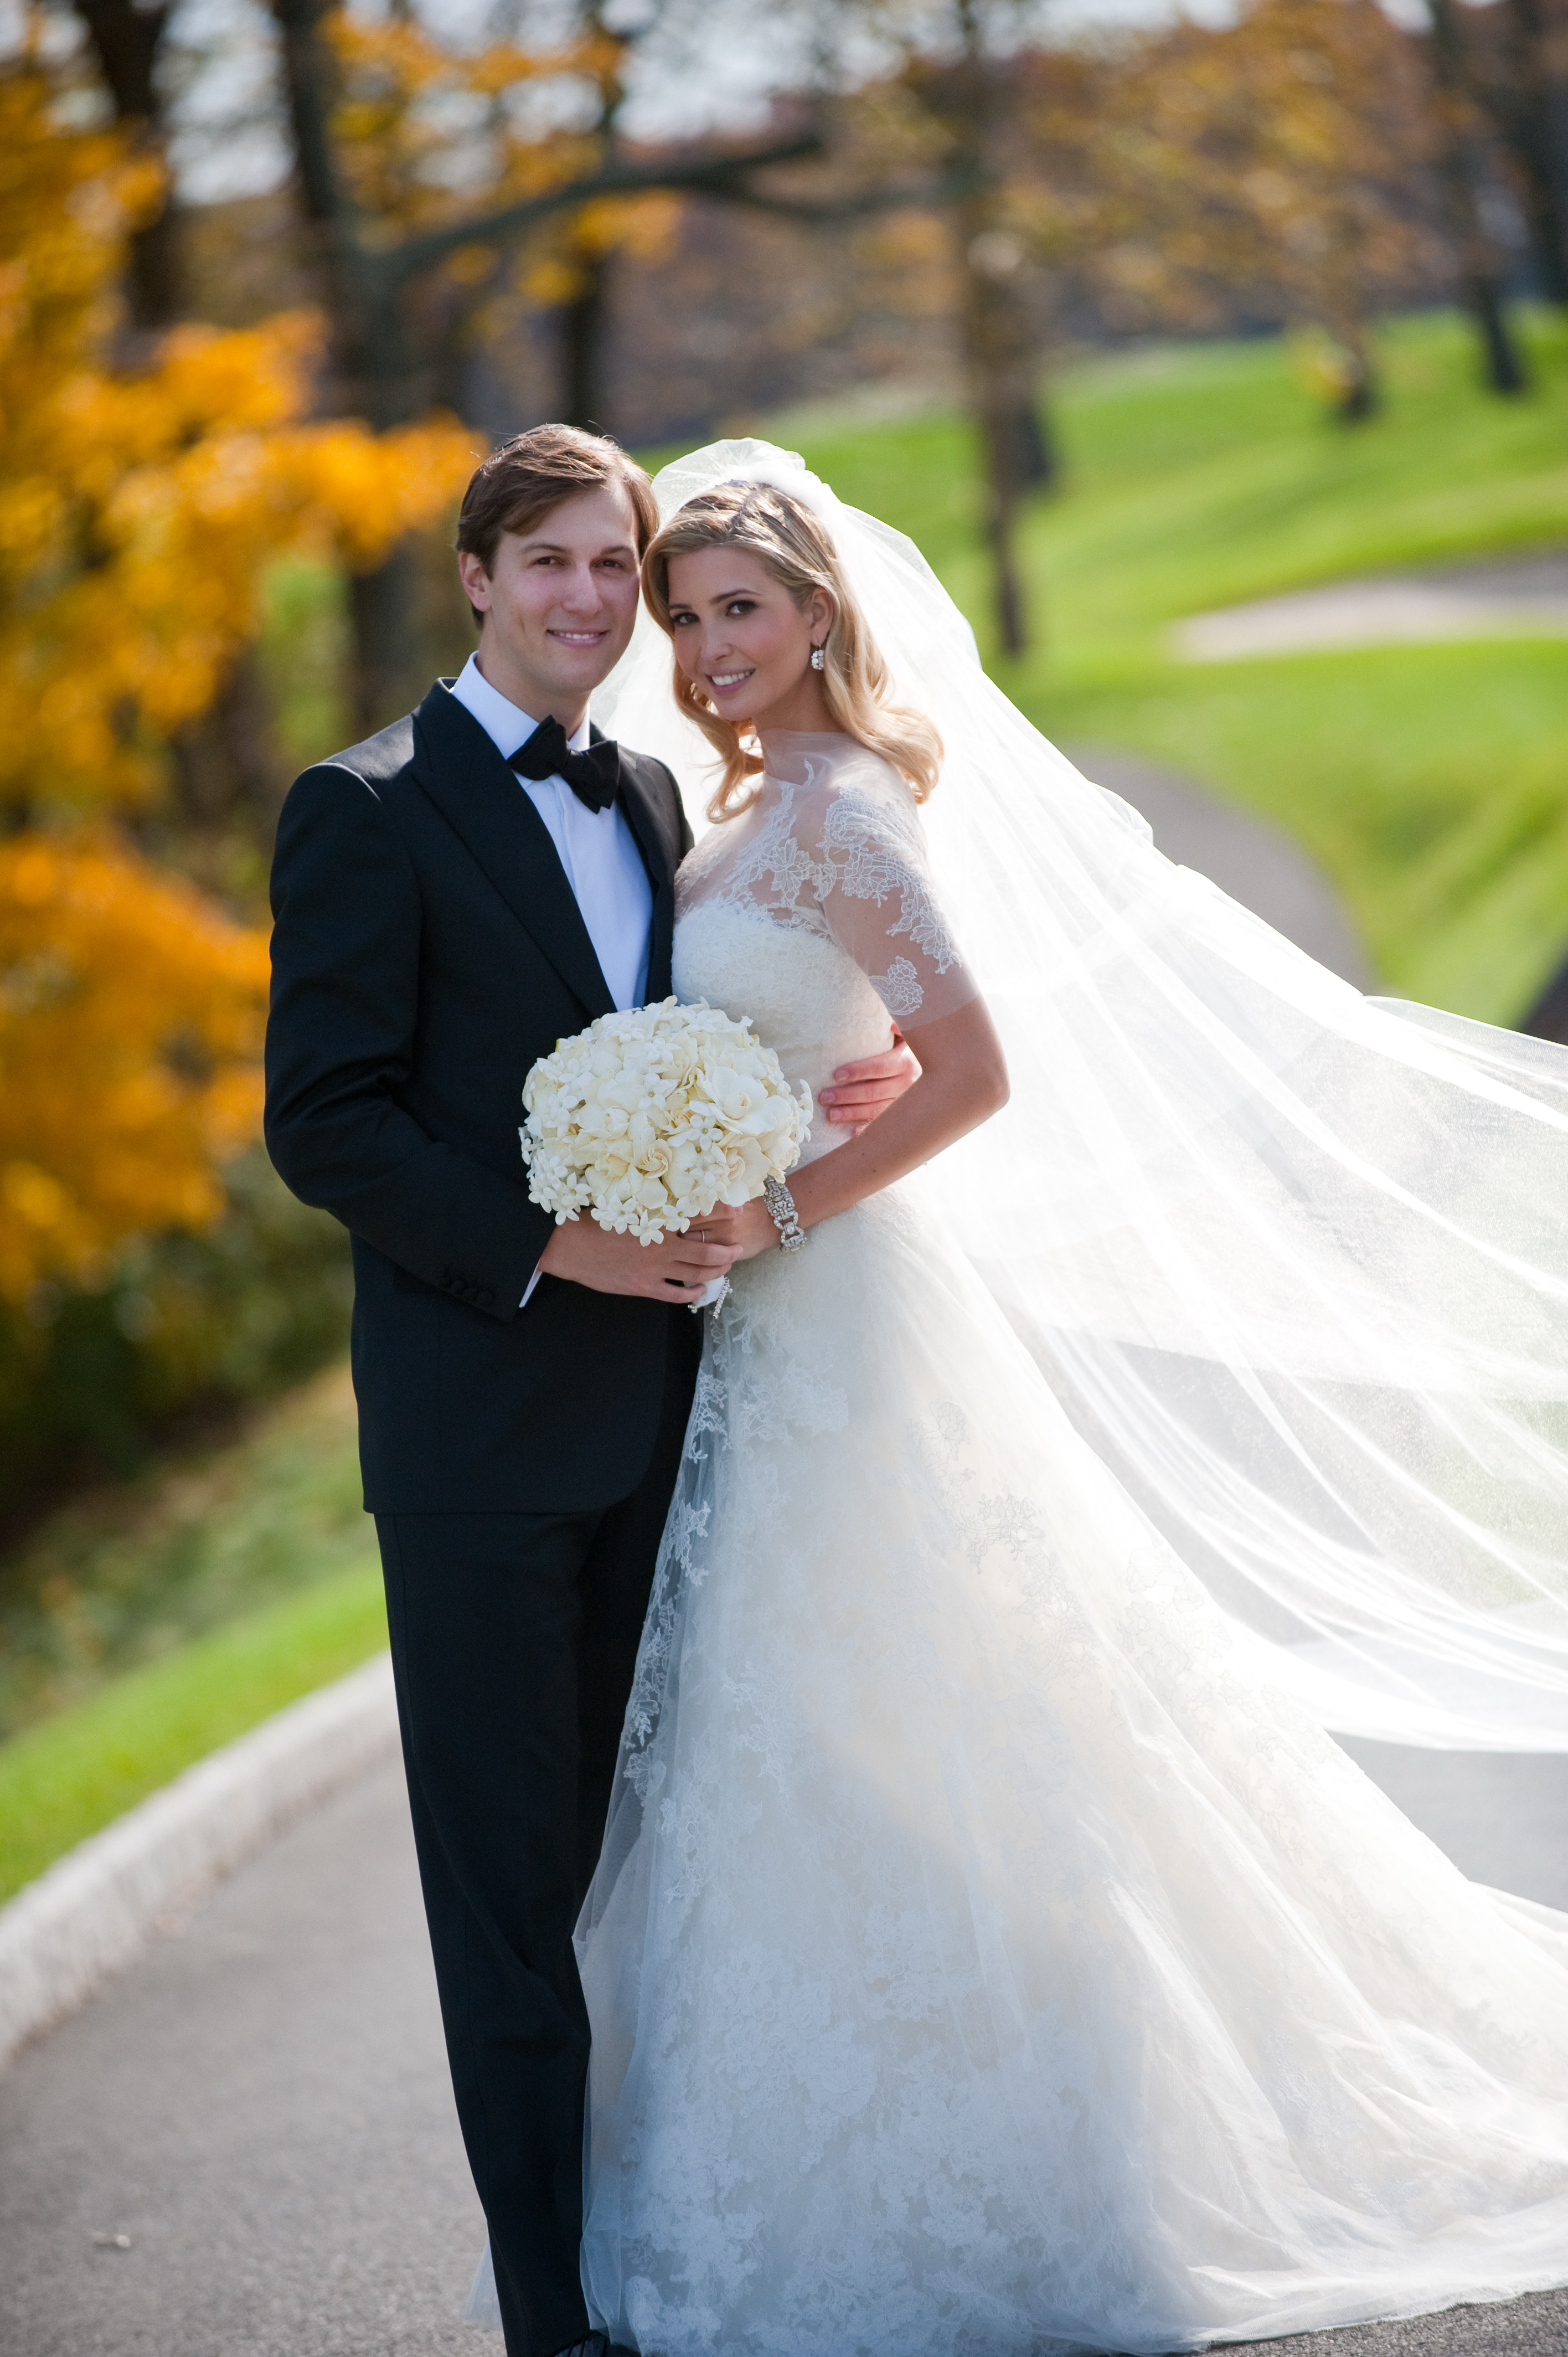 jared kushner, ivanka trump husband